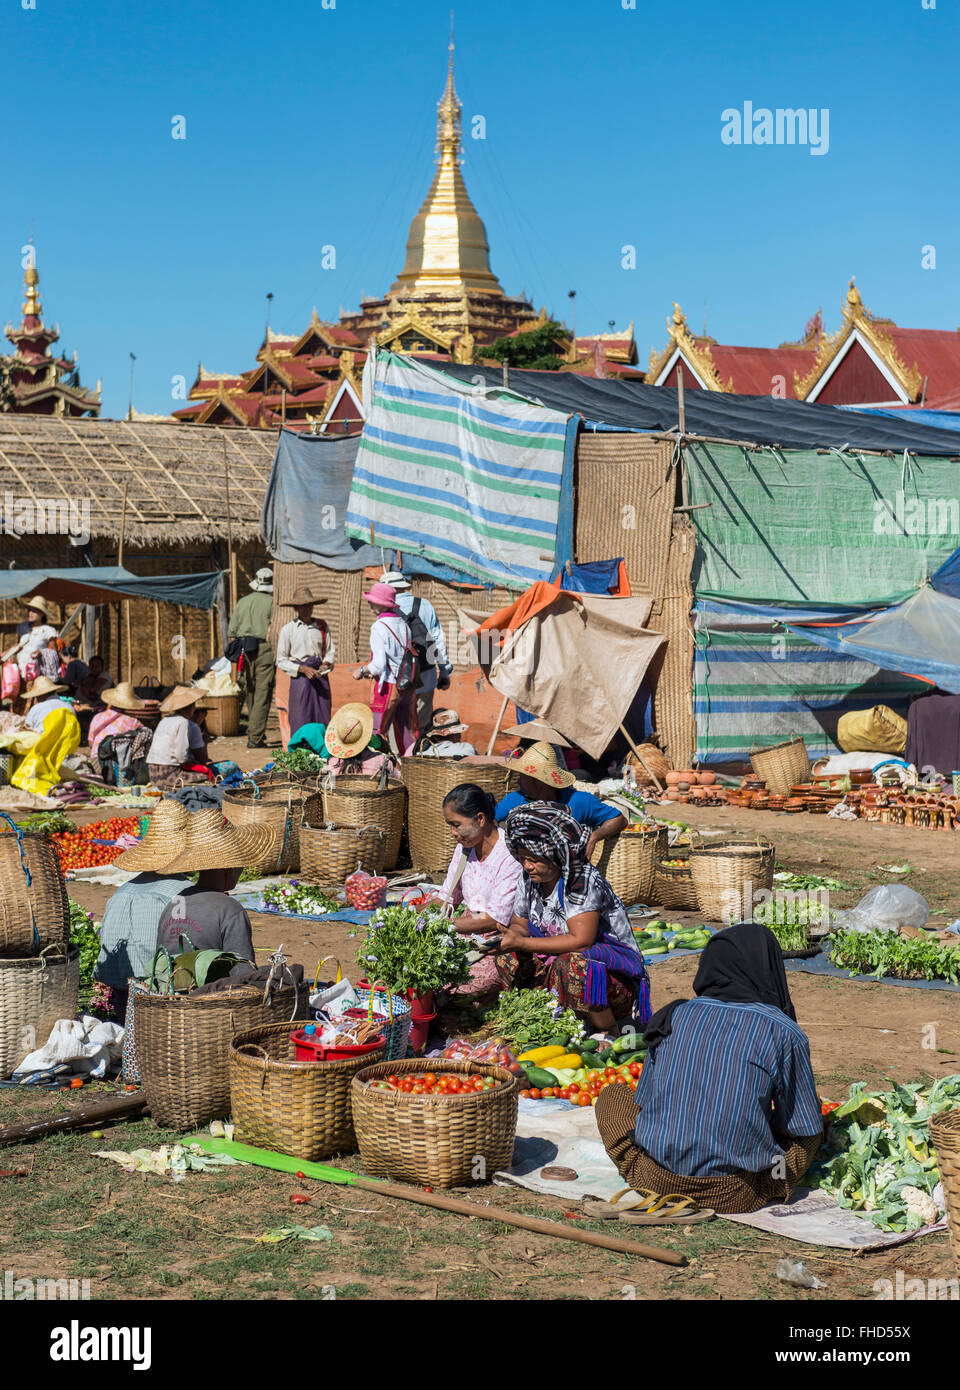 Market day at the Inle lake, Burma - Stock Image